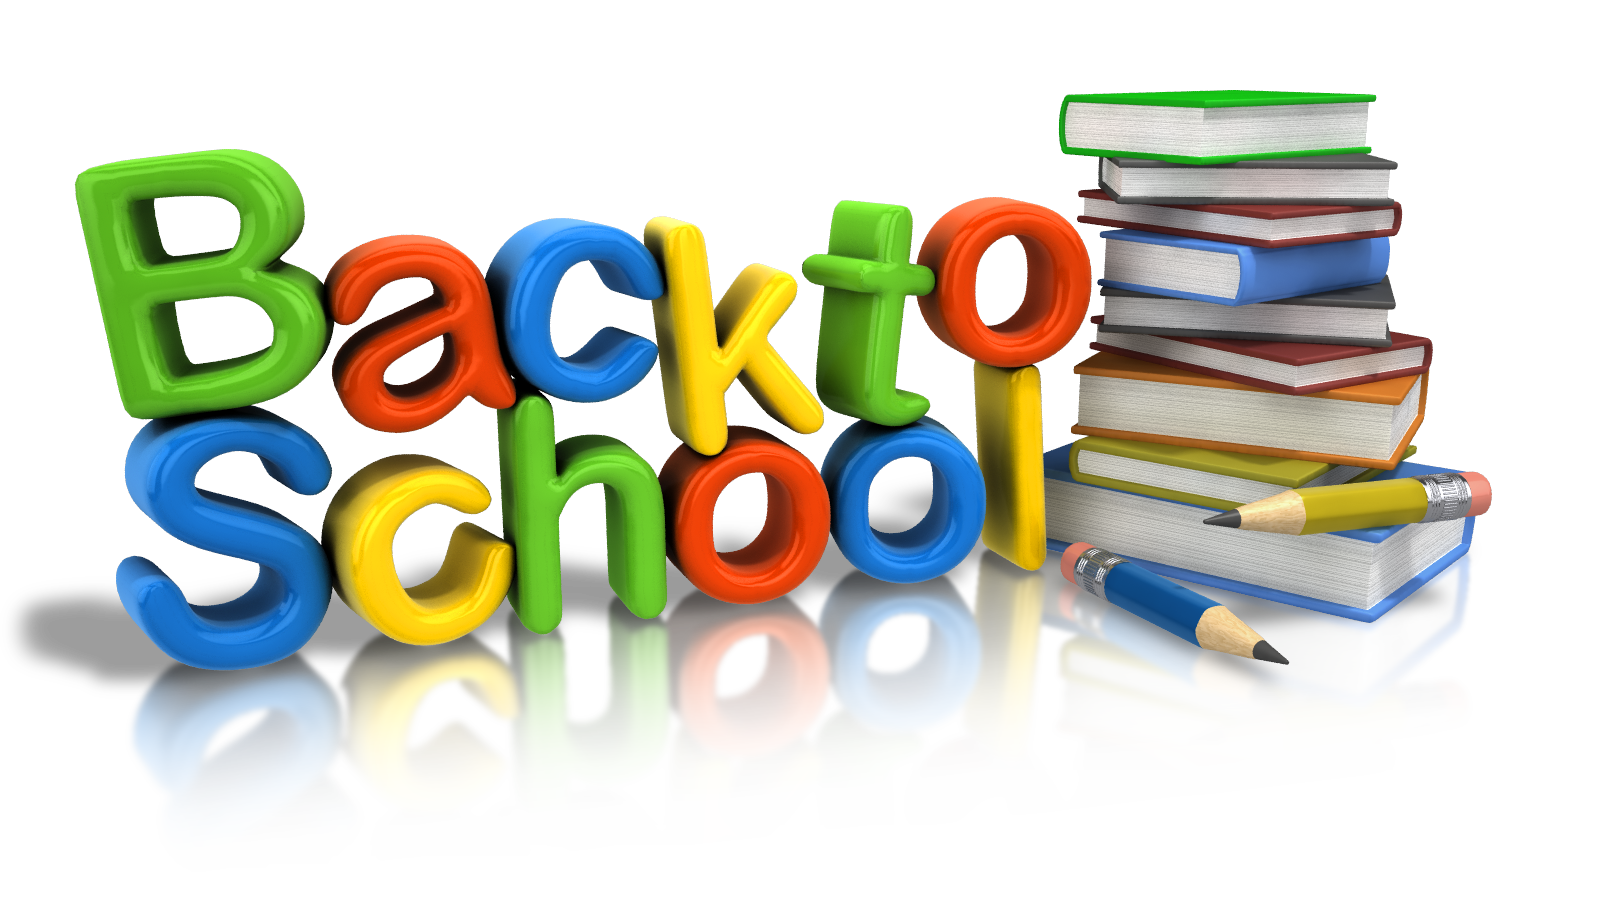 September clipart back to school. Funny images pictures